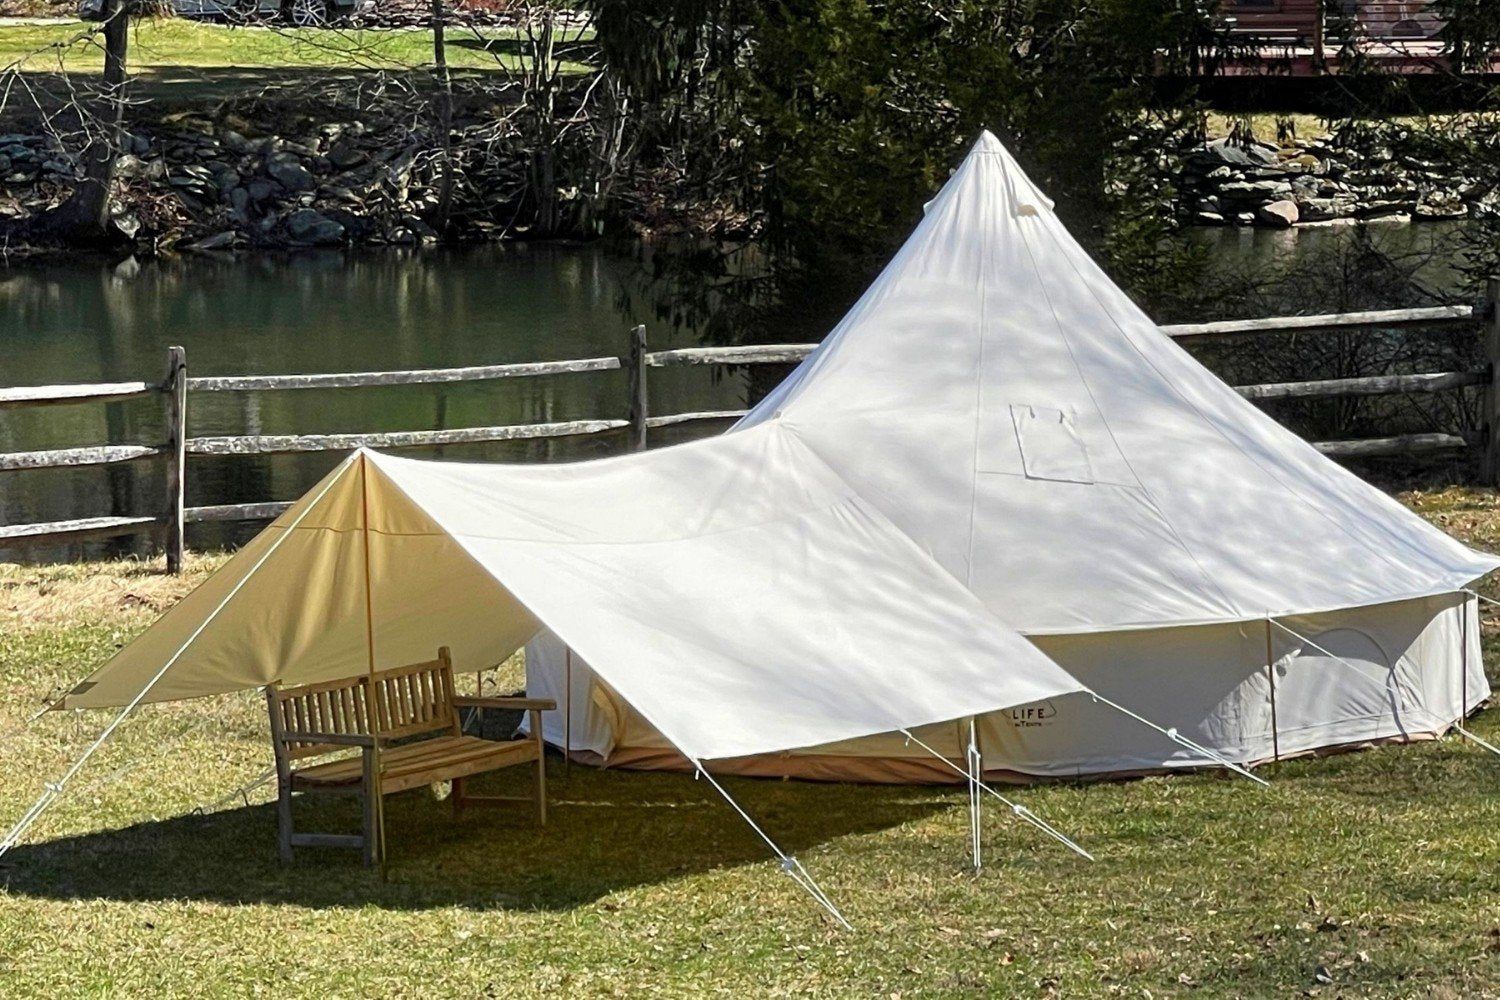 A canvas bell tent with an awning that provides extra space and shade in order to keep cool.